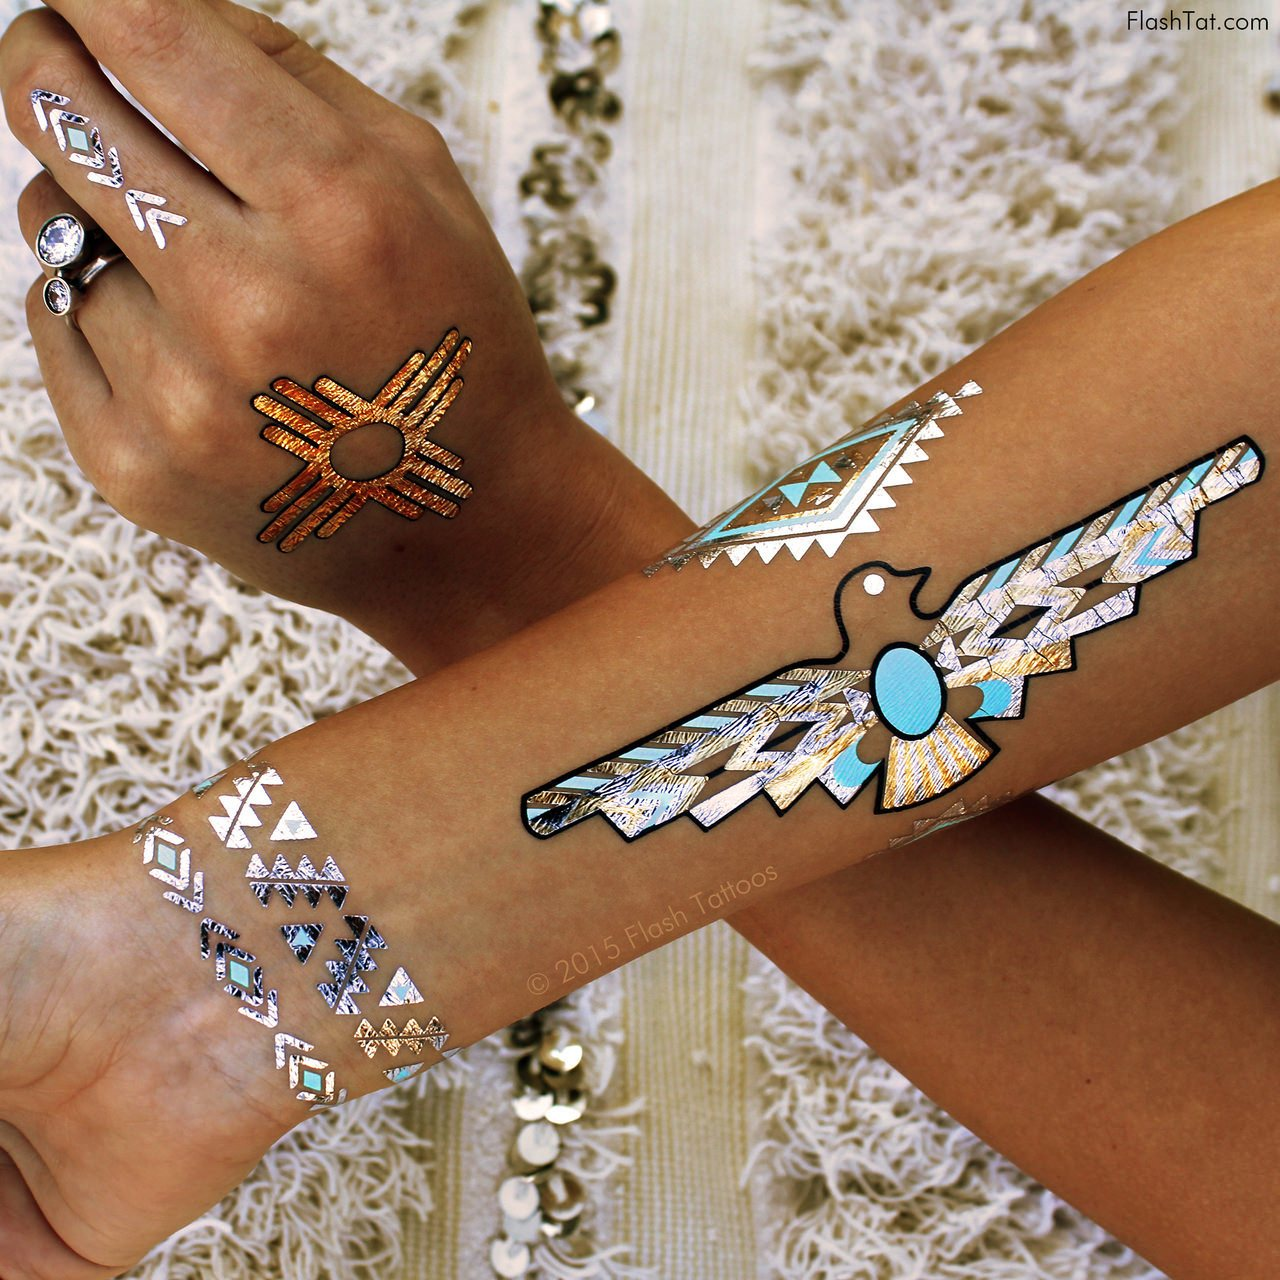 Desert Dweller Metallic Temporary Tattoo Pack Beauty & Health - Body Art Tattoos